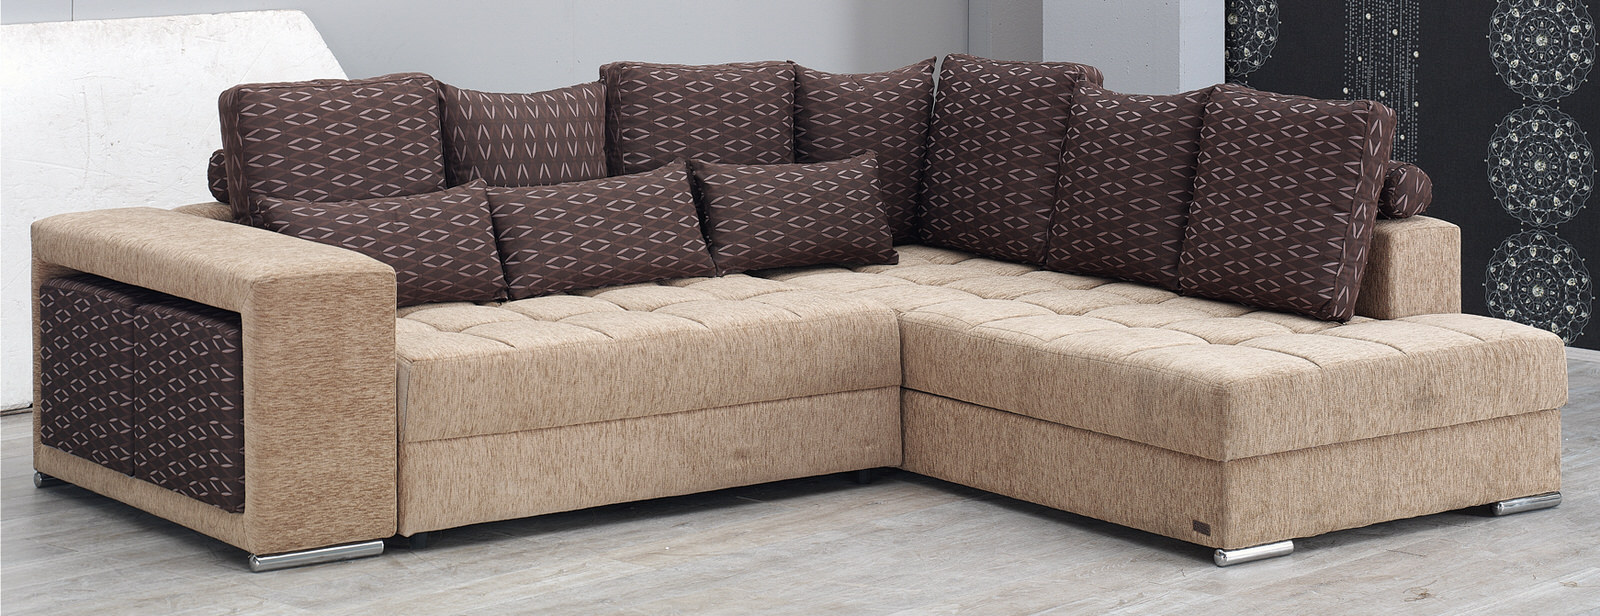 Sofa Bed Los Angeles Los Angeles Sectional Sofa Set By Empire Furniture Usa